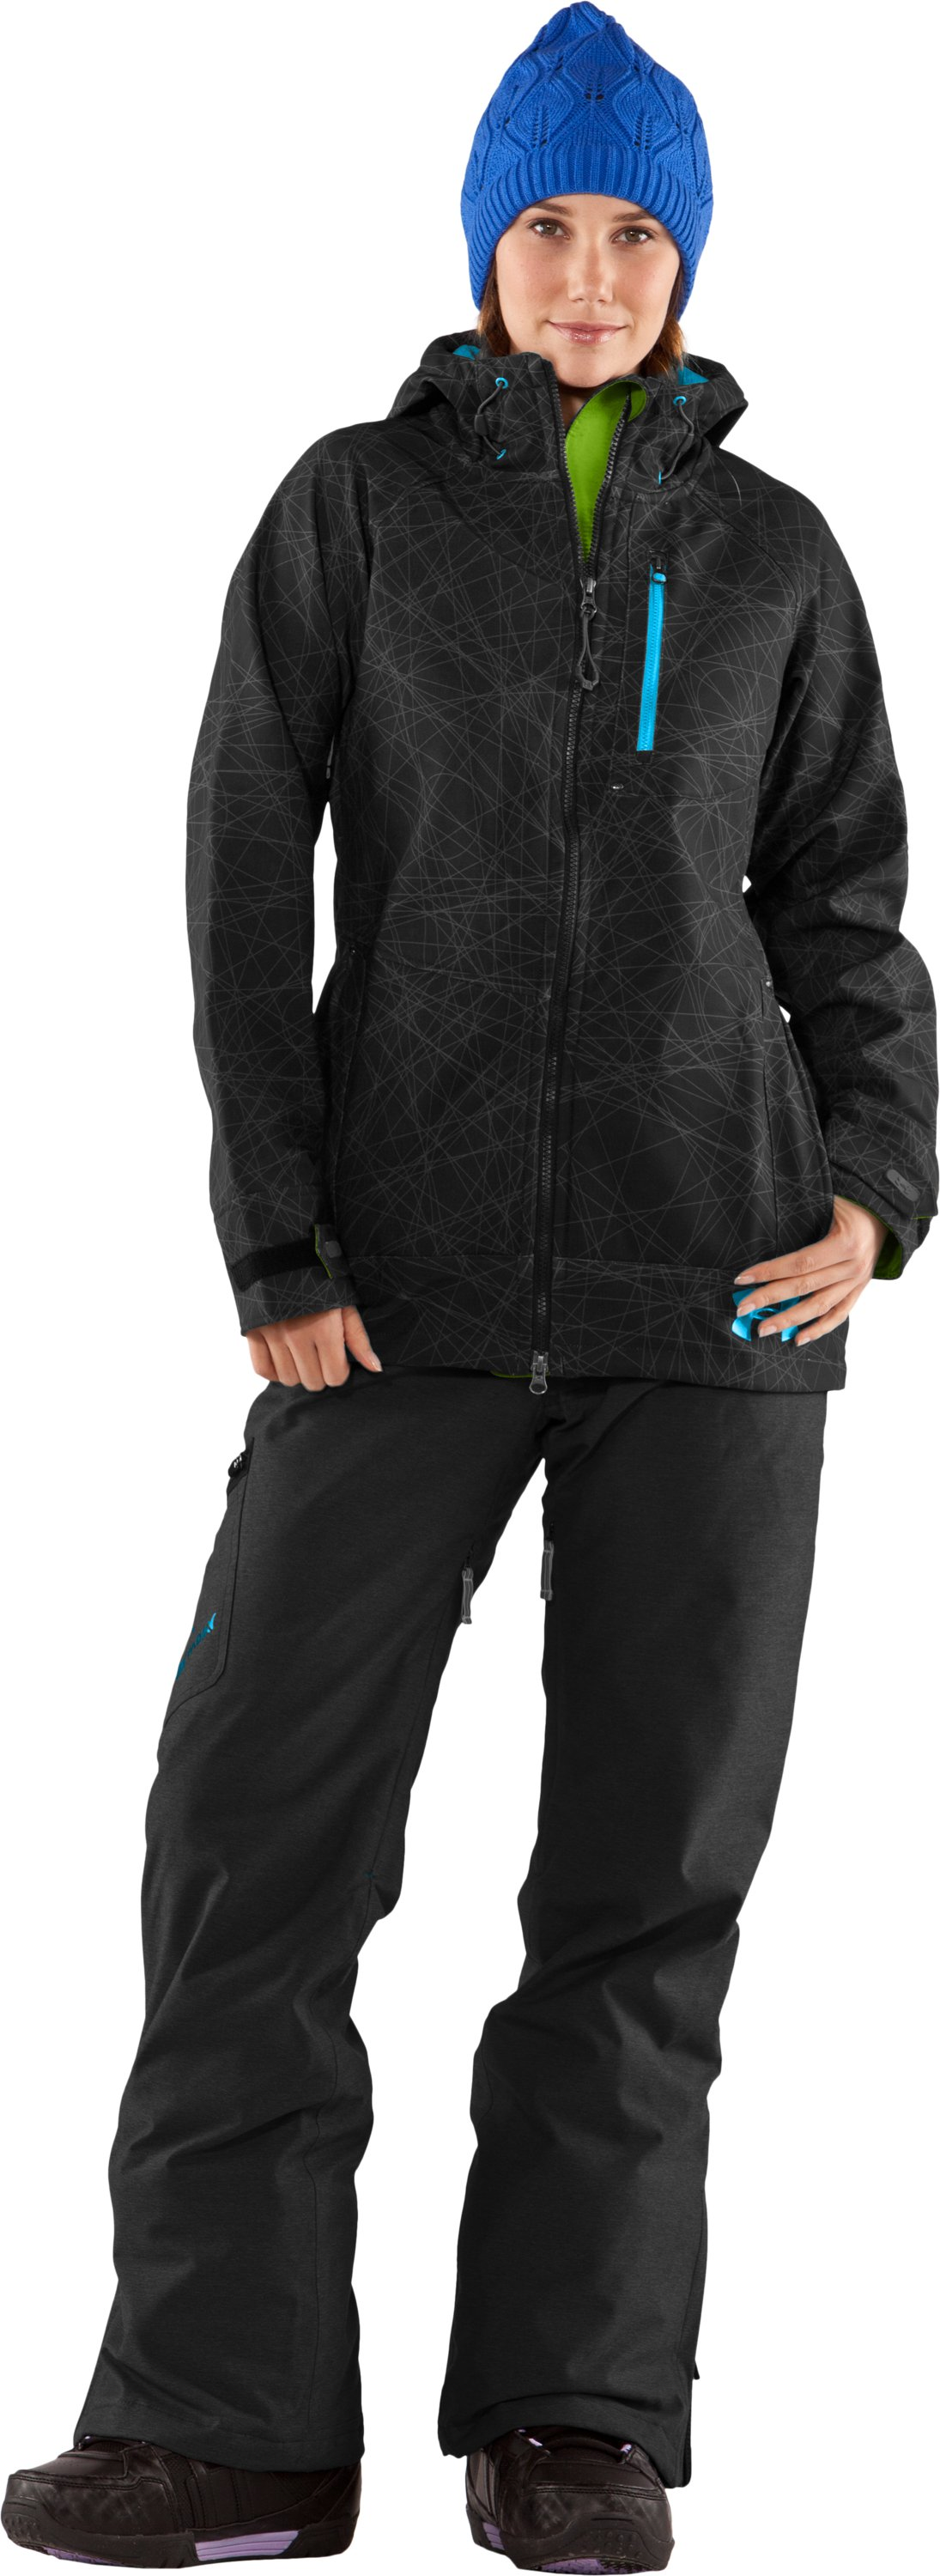 Women's Viscosity Softshell II Jacket, Black